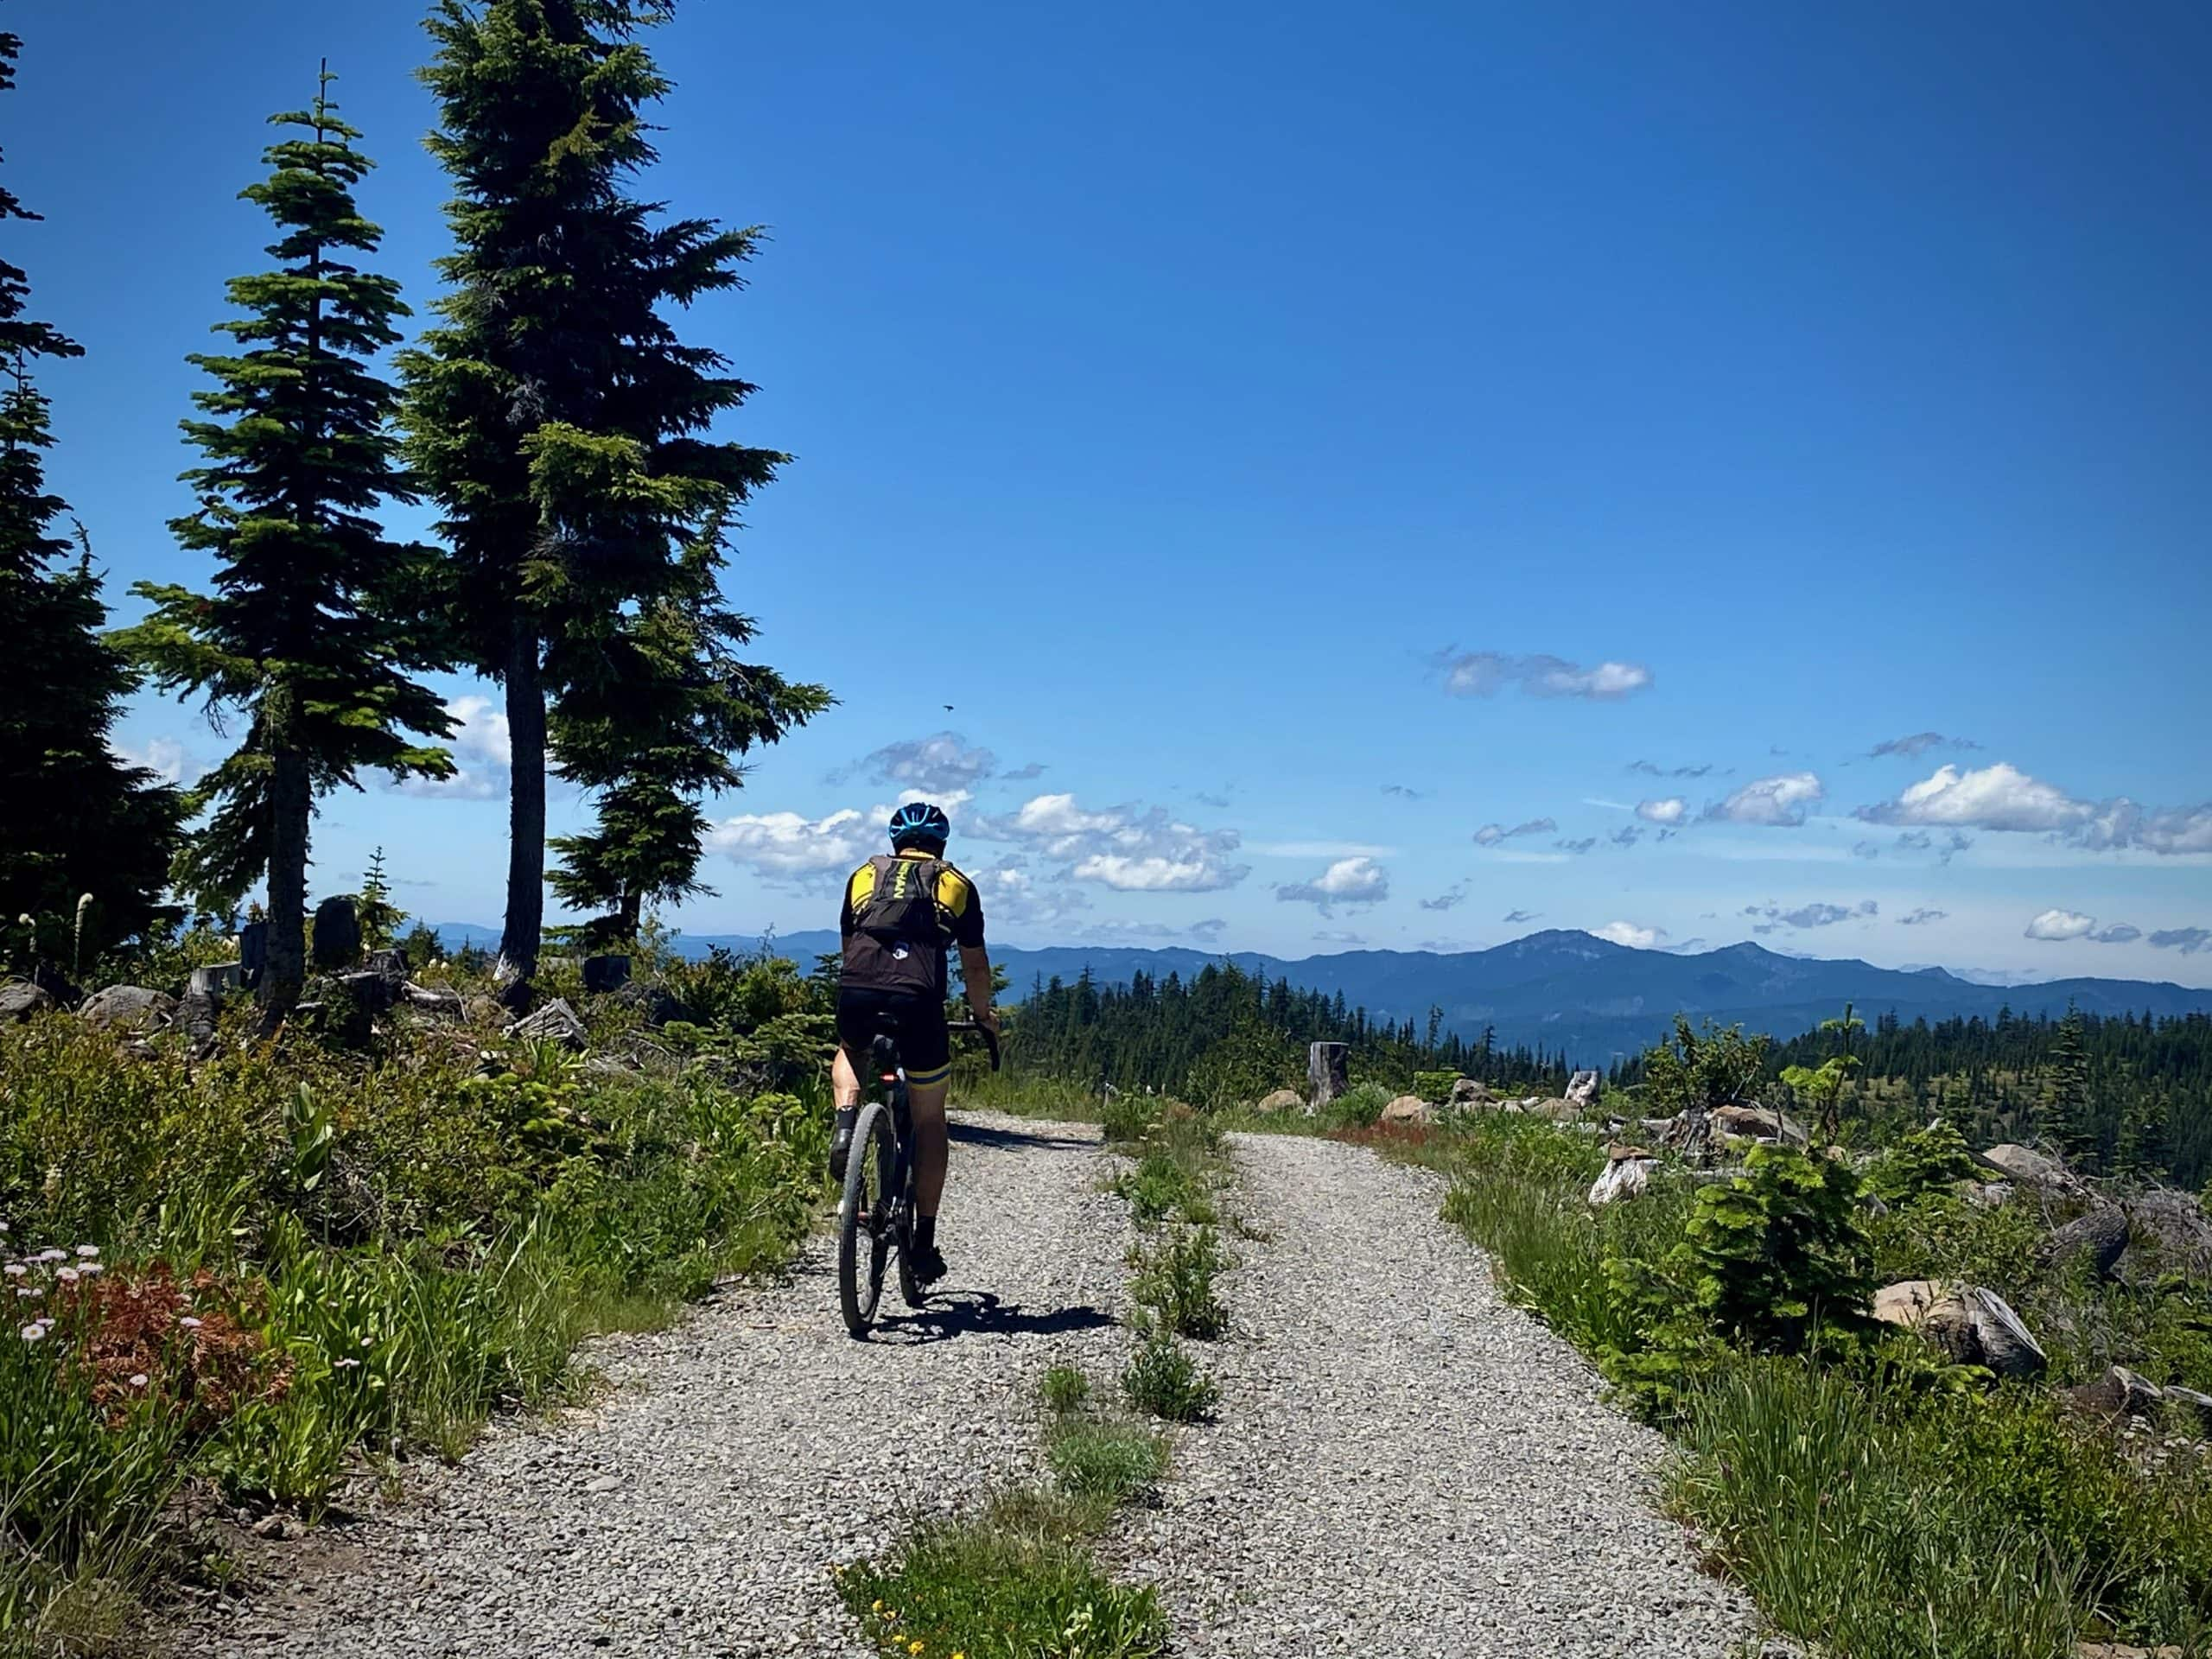 Cyclist leaving the Warner Ridge Lookout on gravel road.